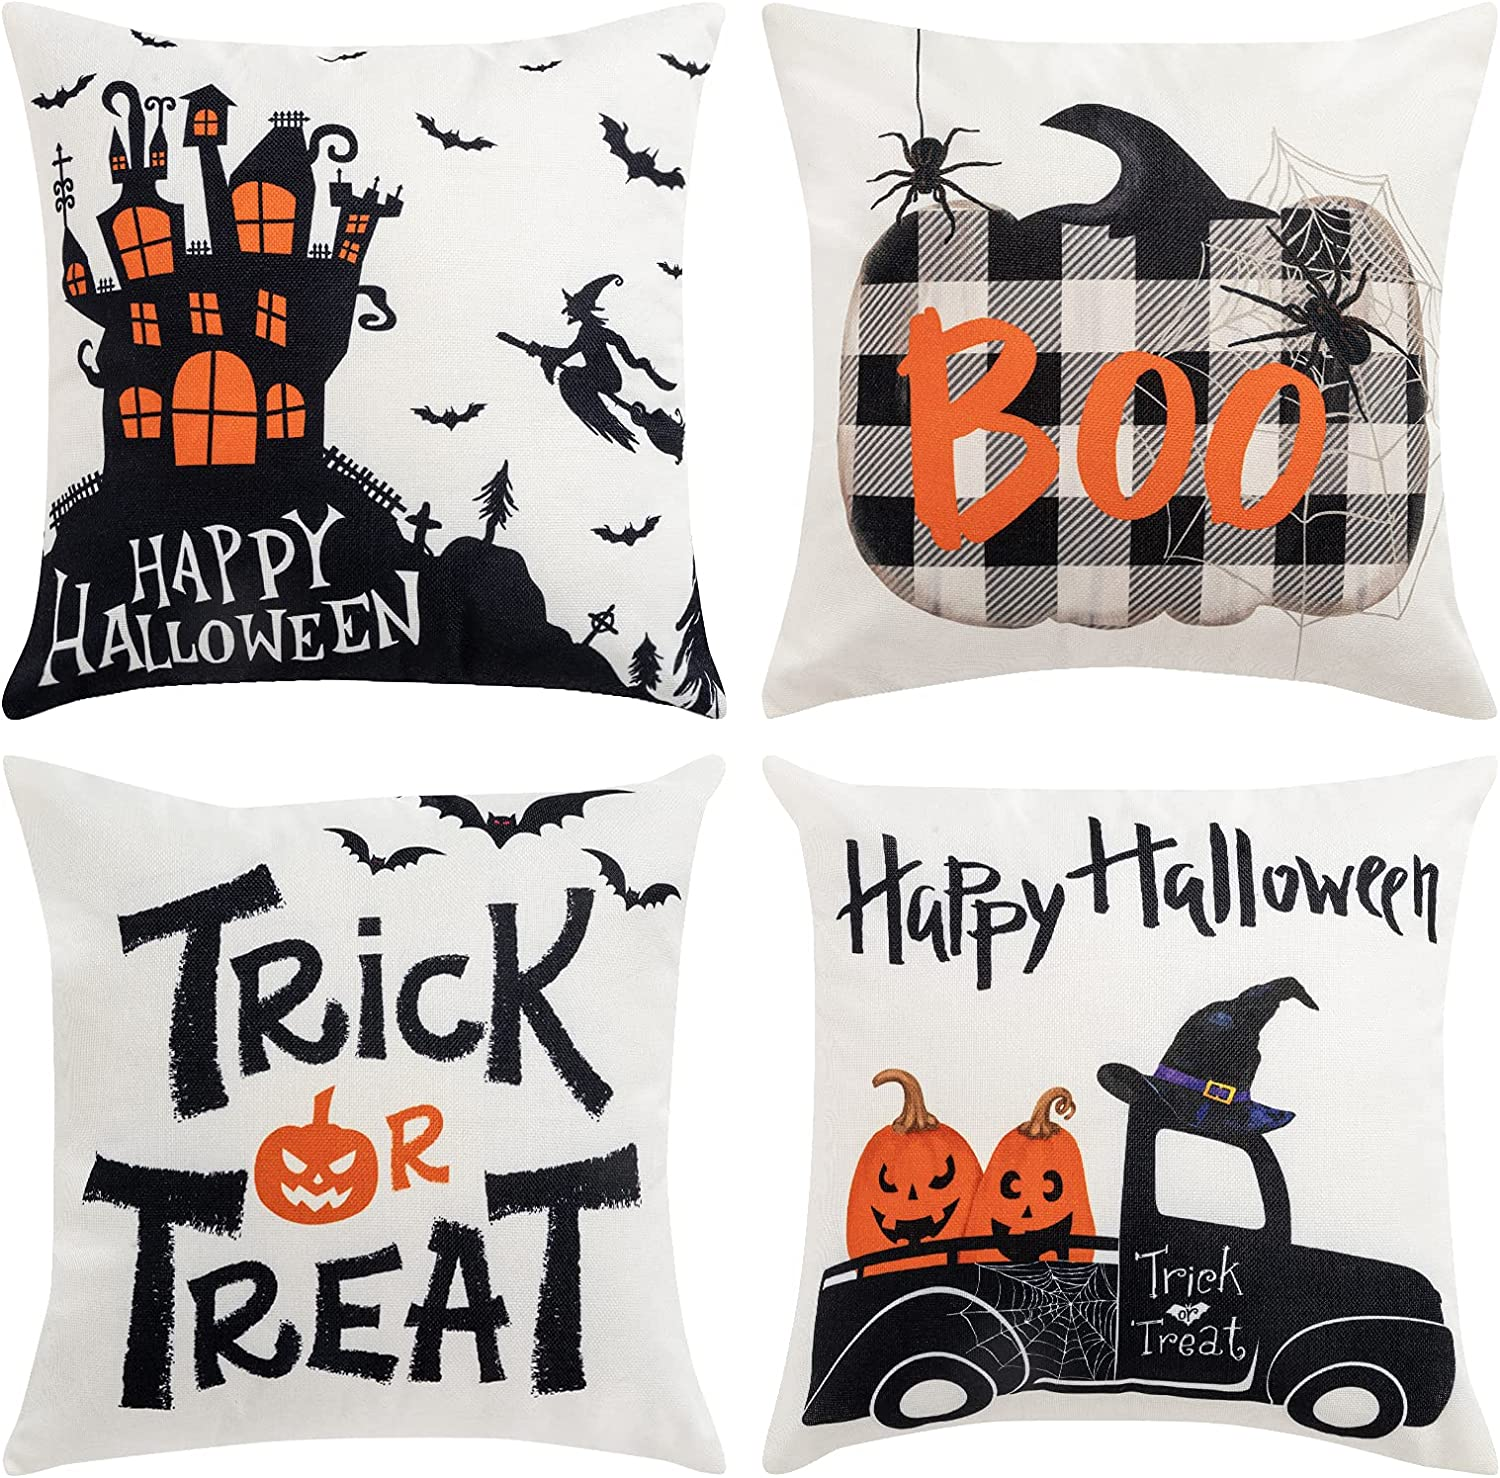 Hogardeck Halloween Pillow Covers Decorations, 18x18 Boo Trick or Treat Happy Halloween Square Decorative Couch Pillow Cases, Set of 4 Halloween Throw Pillow Cover